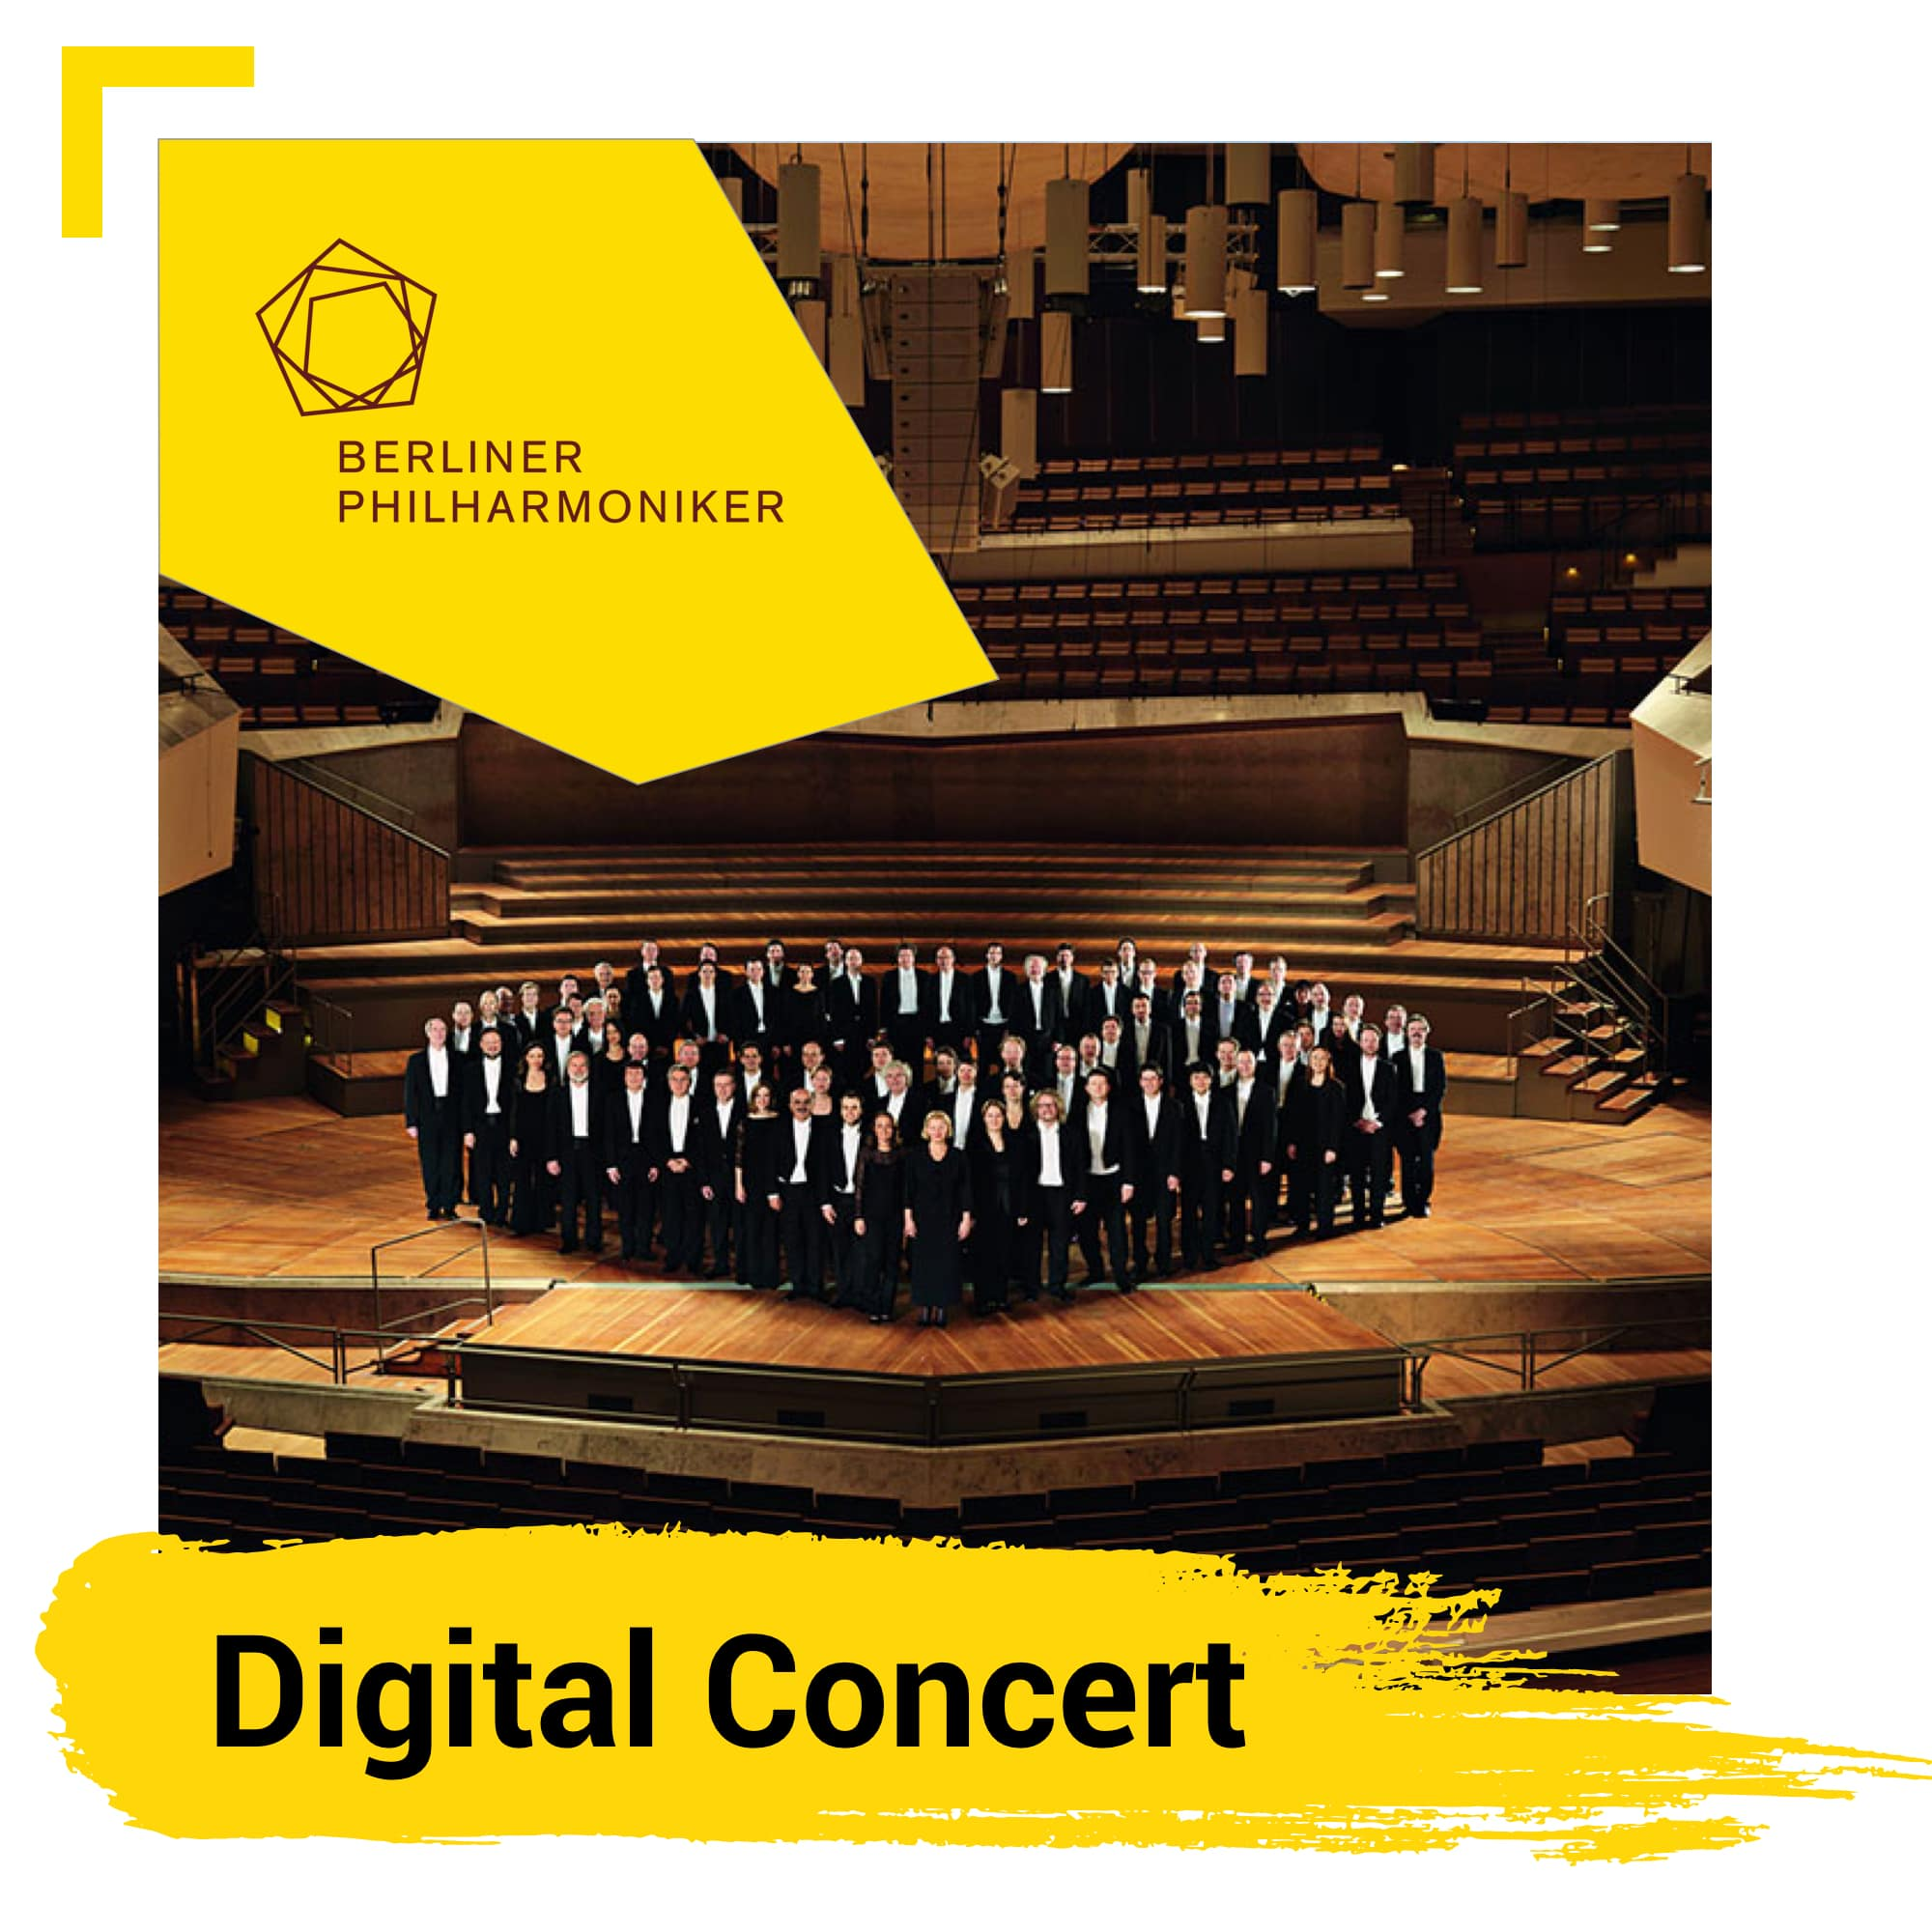 Digital Concerts from Berlin Philarmonic